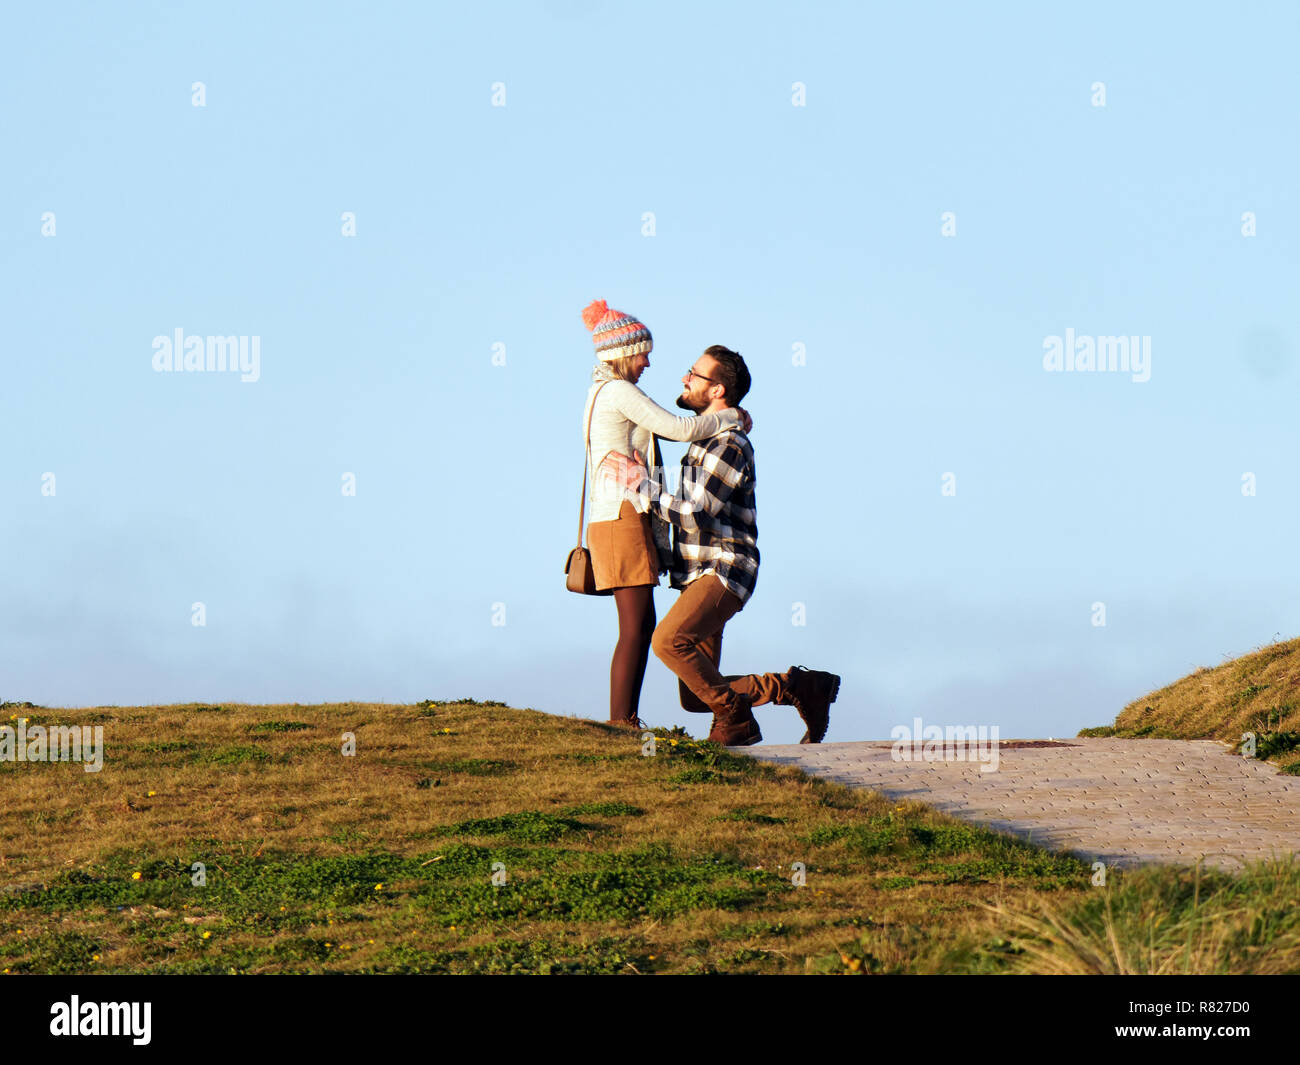 Wedding proposal caught accidentally by photographer. - Stock Image